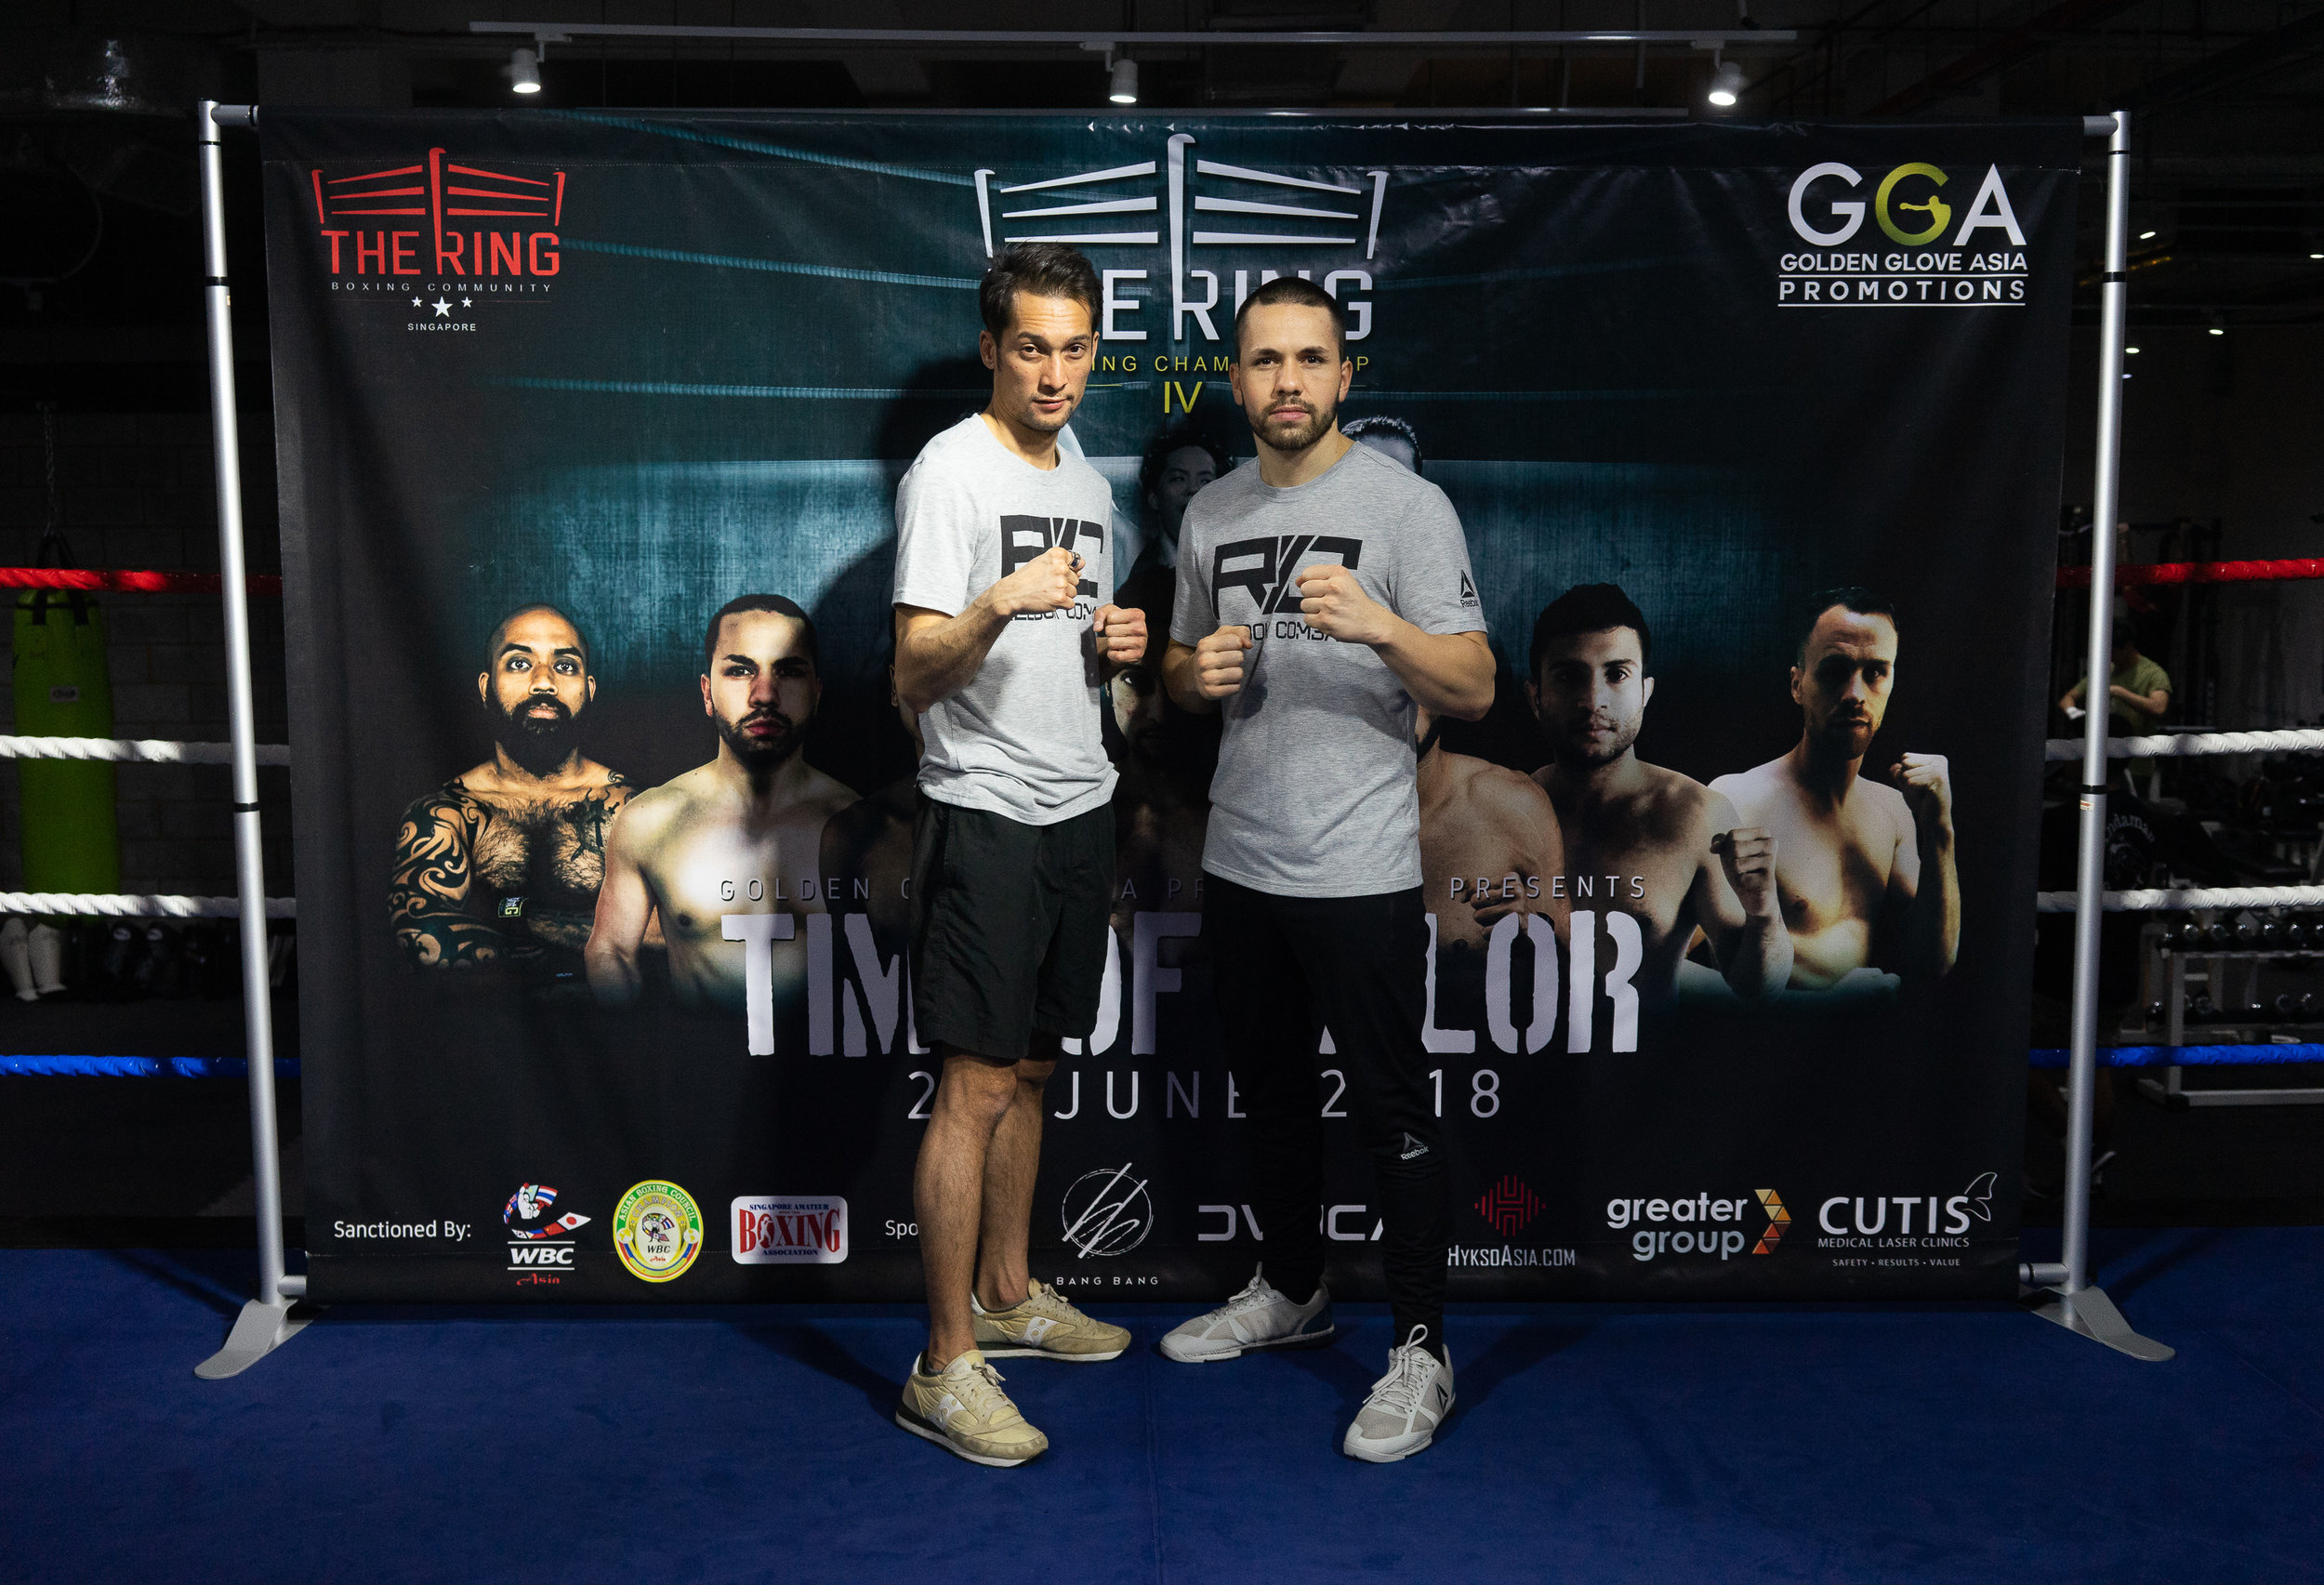 The Ring's Boxing Coaches and Singapore's Professional Boxers